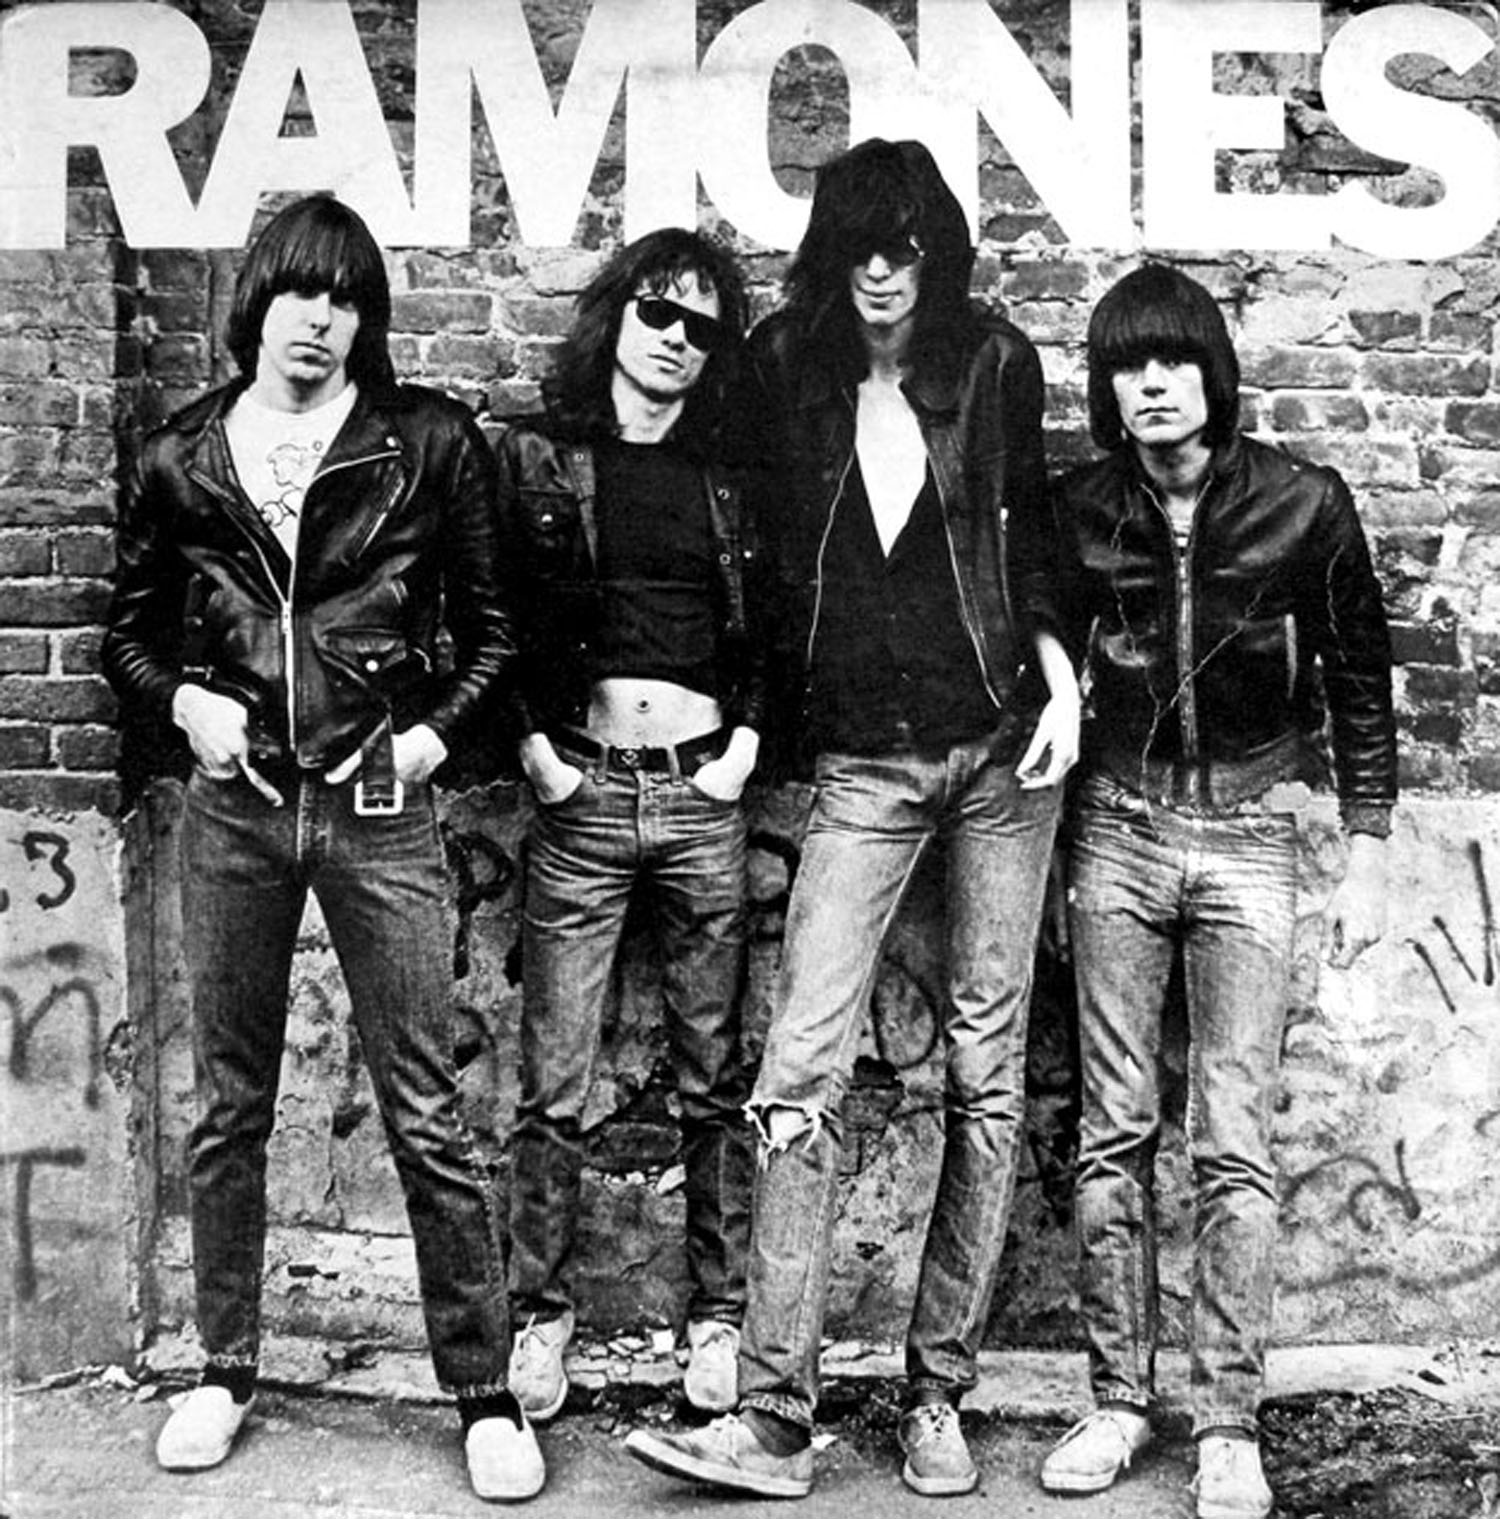 Roberta Bayley (photographer), Ramones album